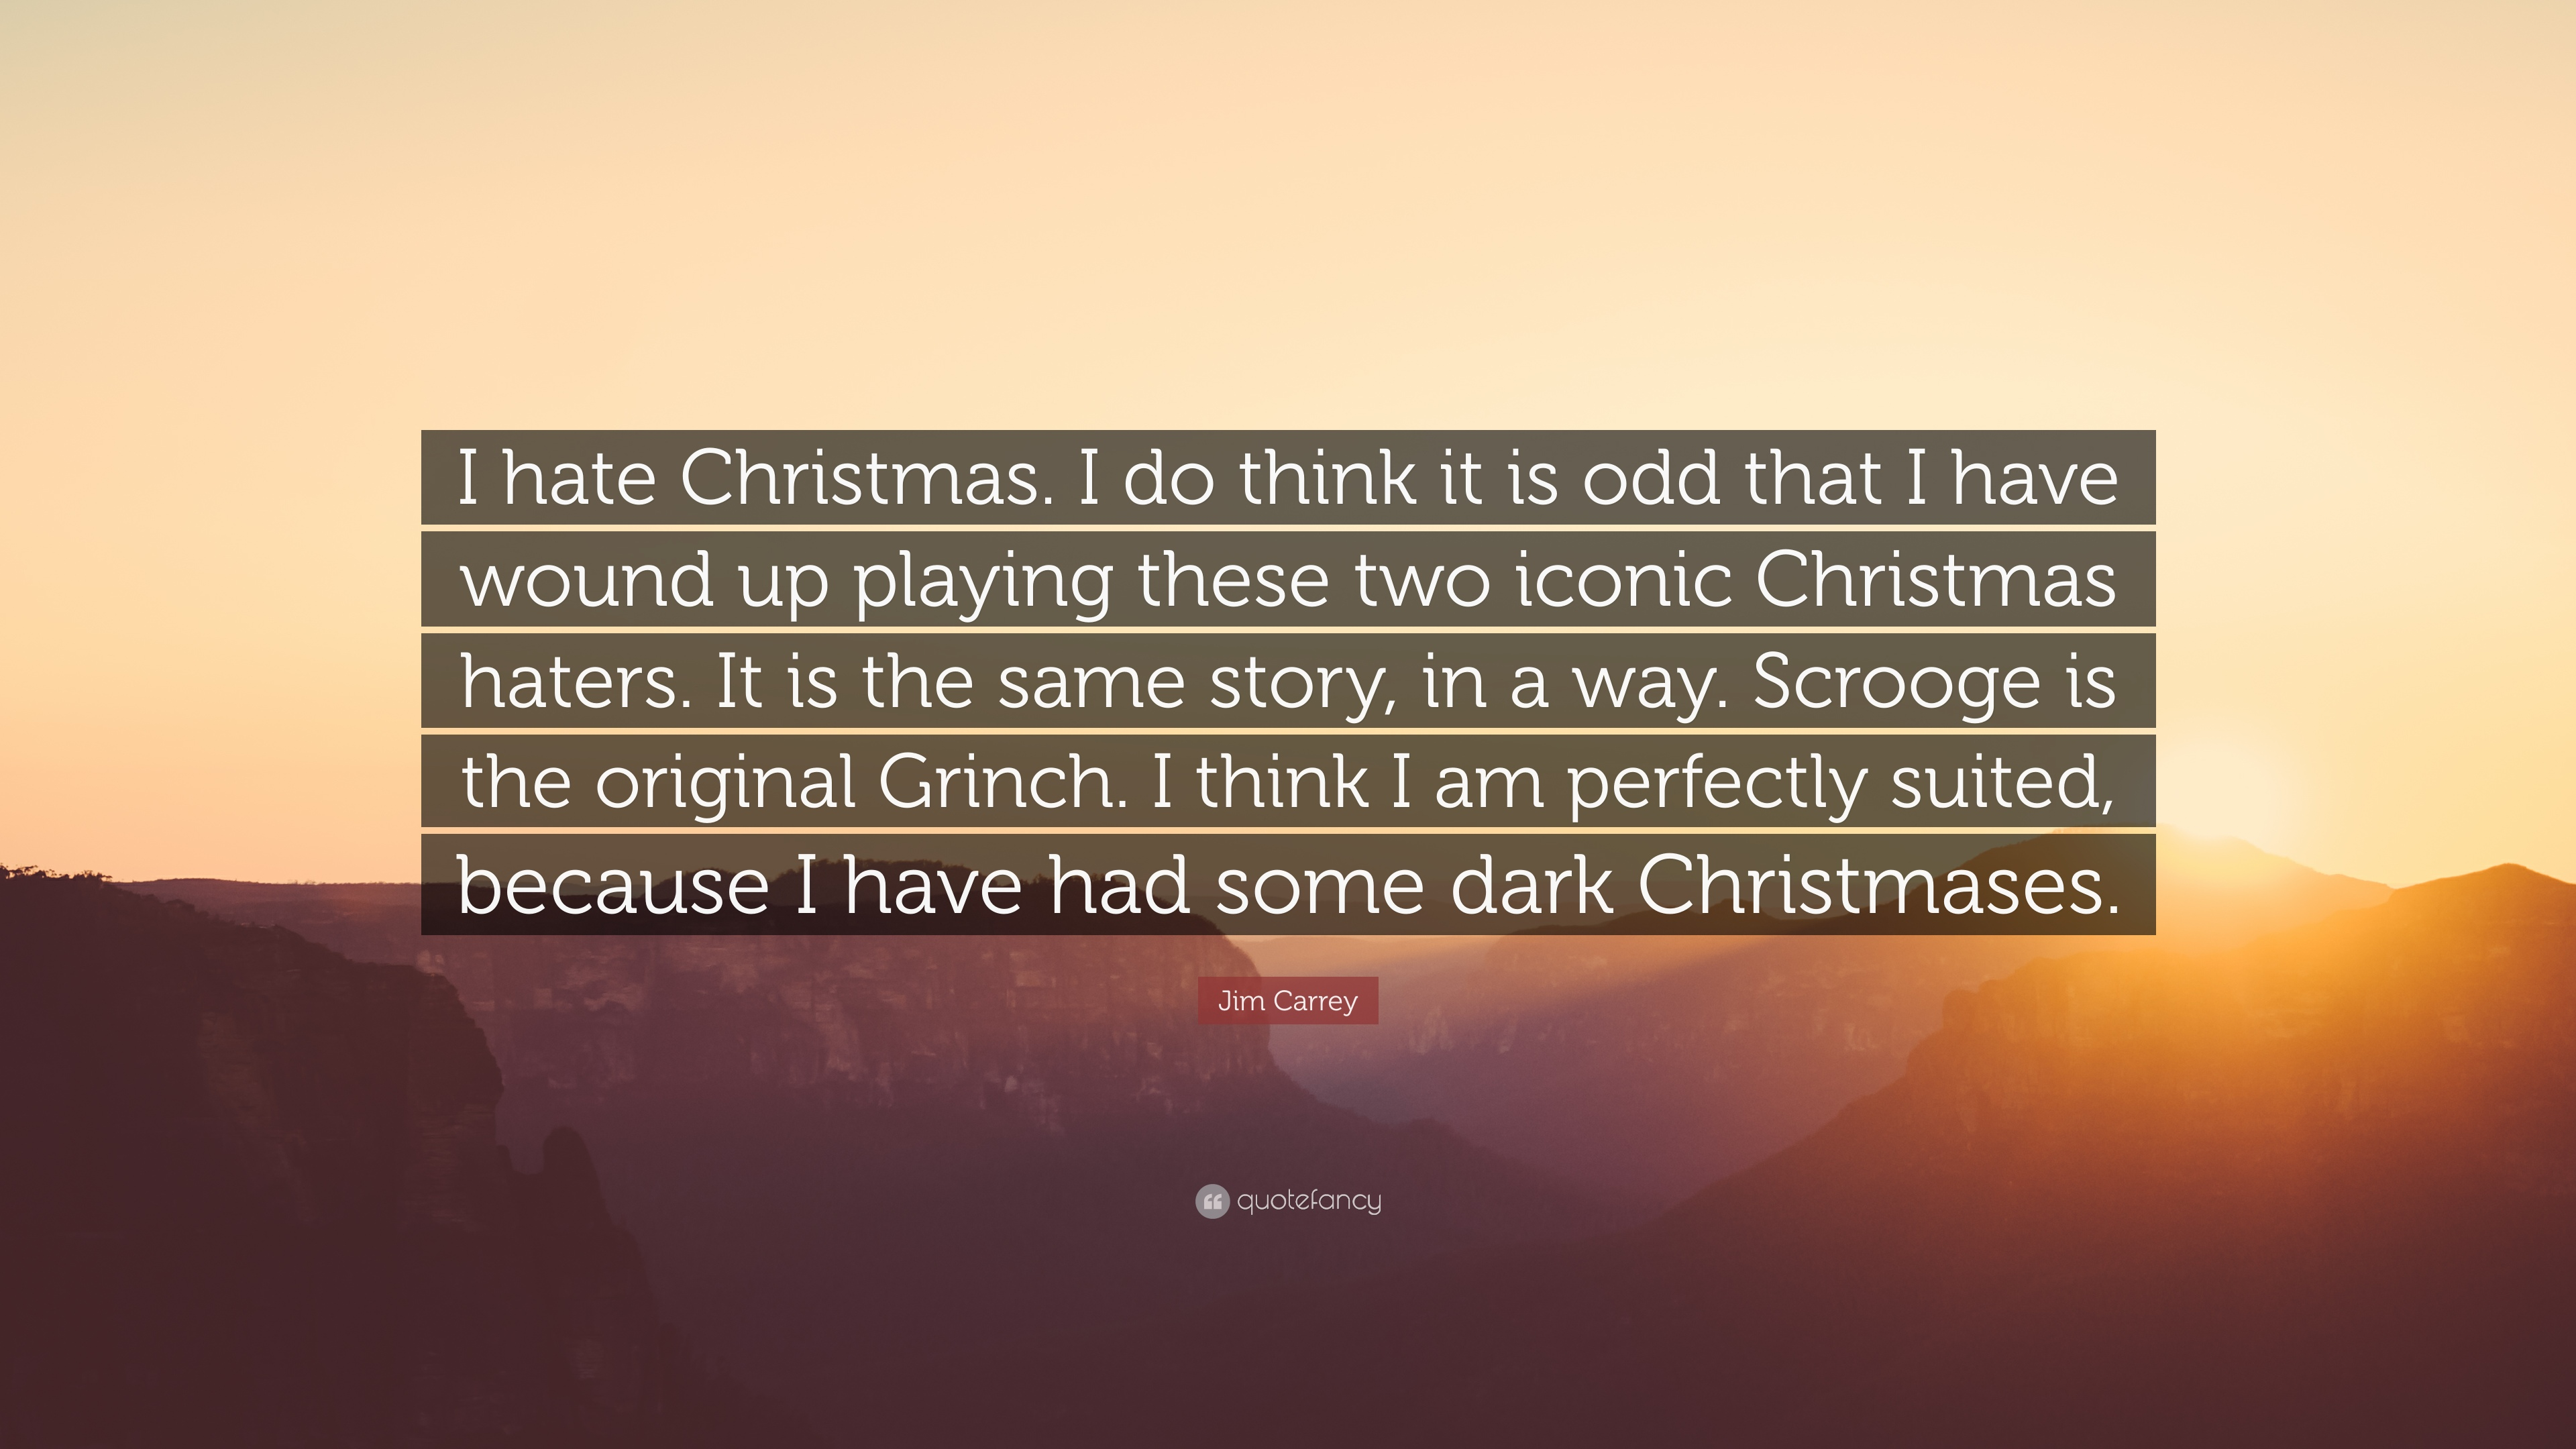 jim carrey quote i hate christmas i do think it is odd that - Why Do I Hate Christmas